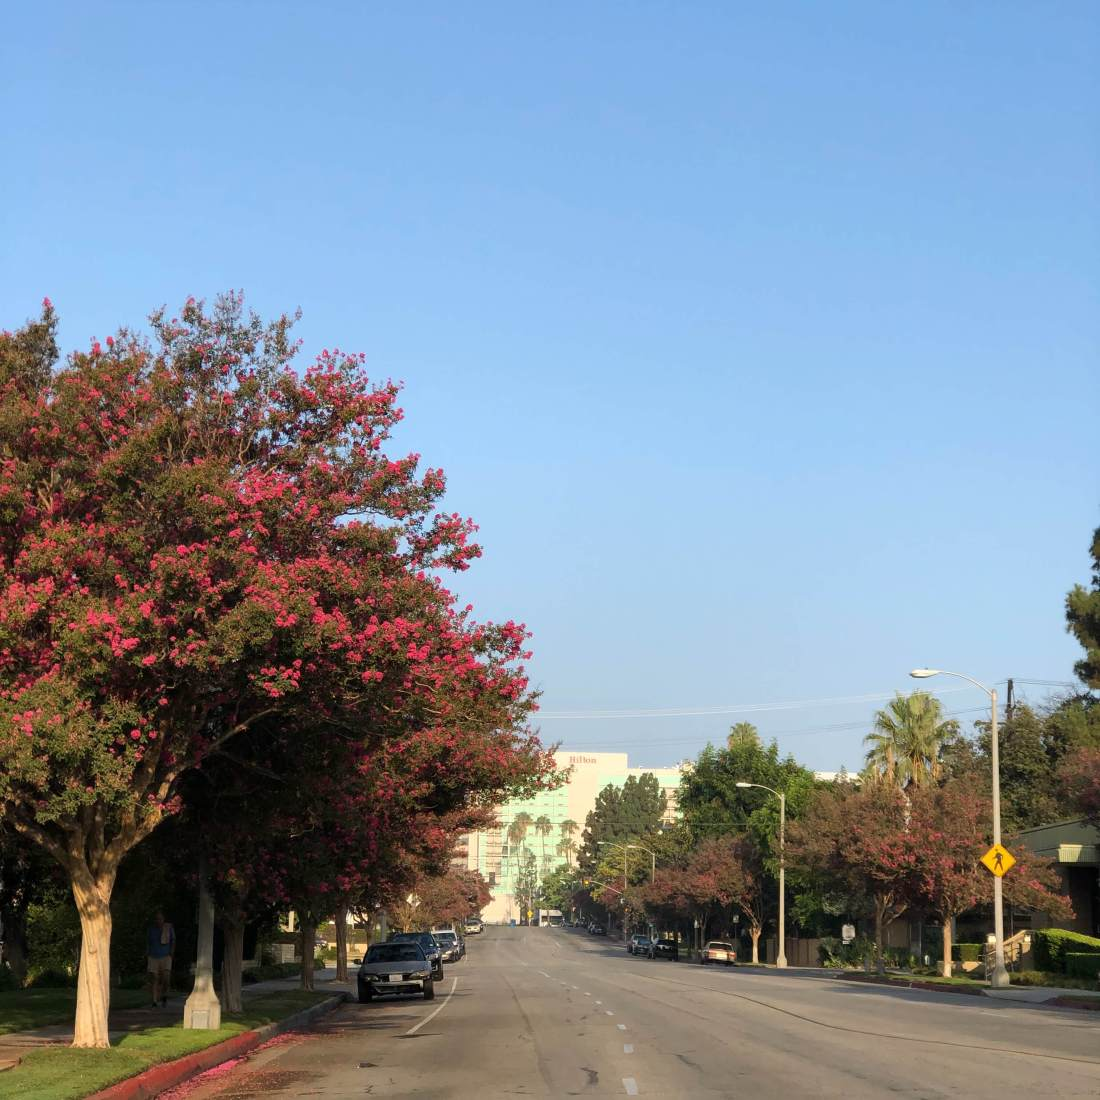 Morning walk in Pasadena, California